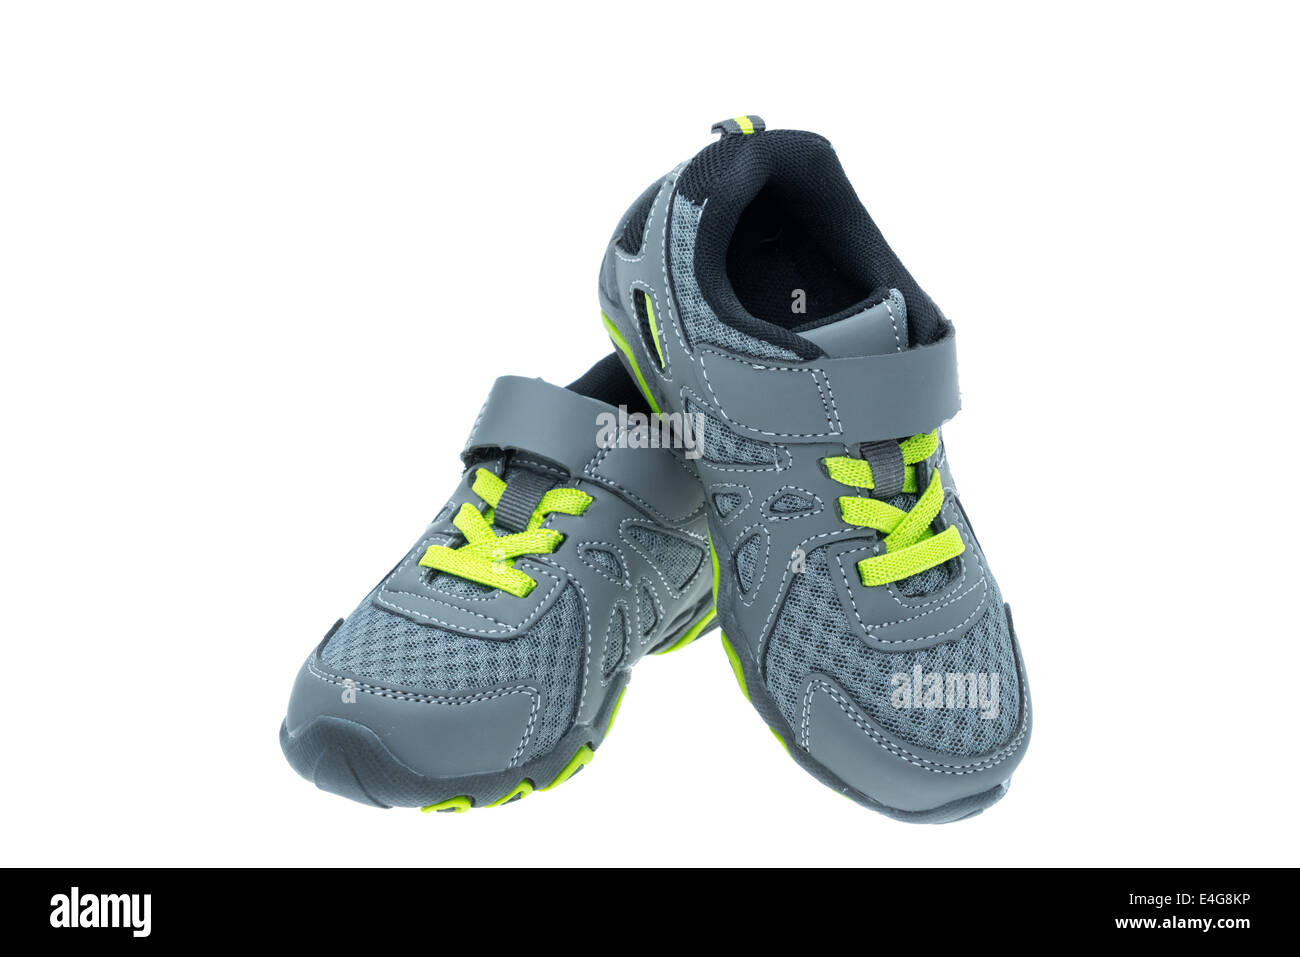 Child's sports shoes - studio shot with a white background - Stock Image